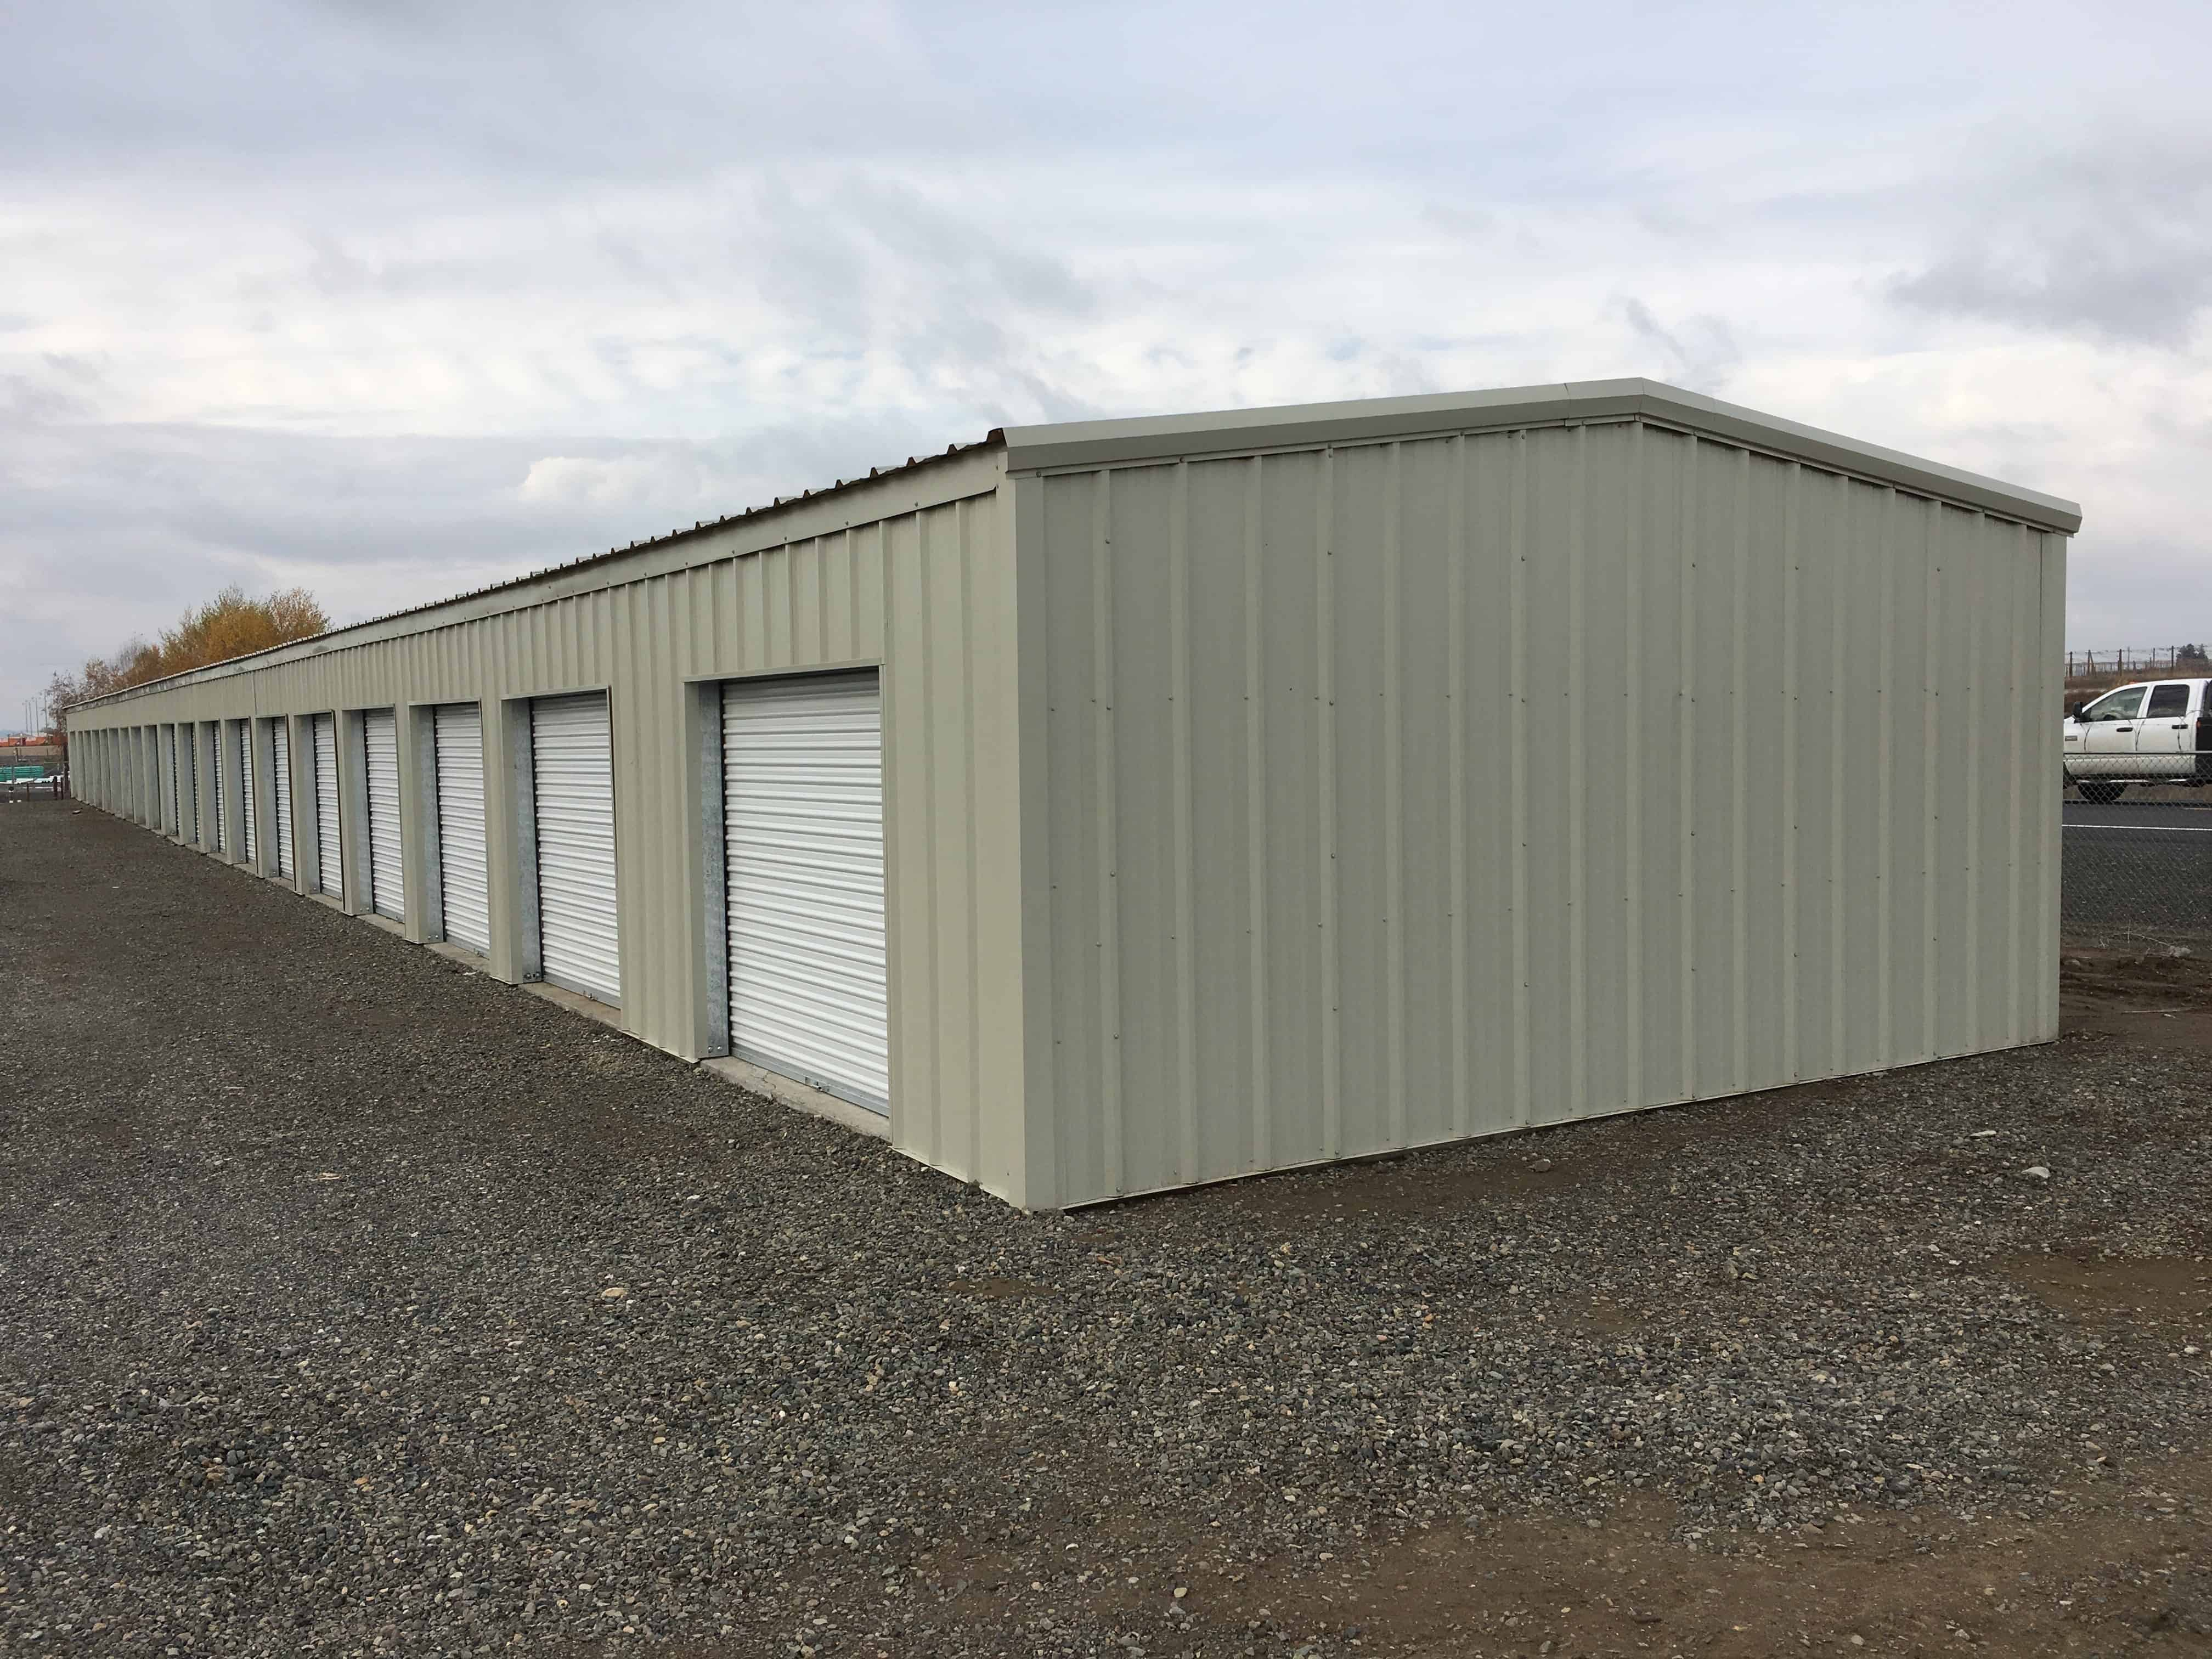 Csc Building Systems Introduces The Self Storage Our Pre Engineered Steel Framed Includes All Of Safety And